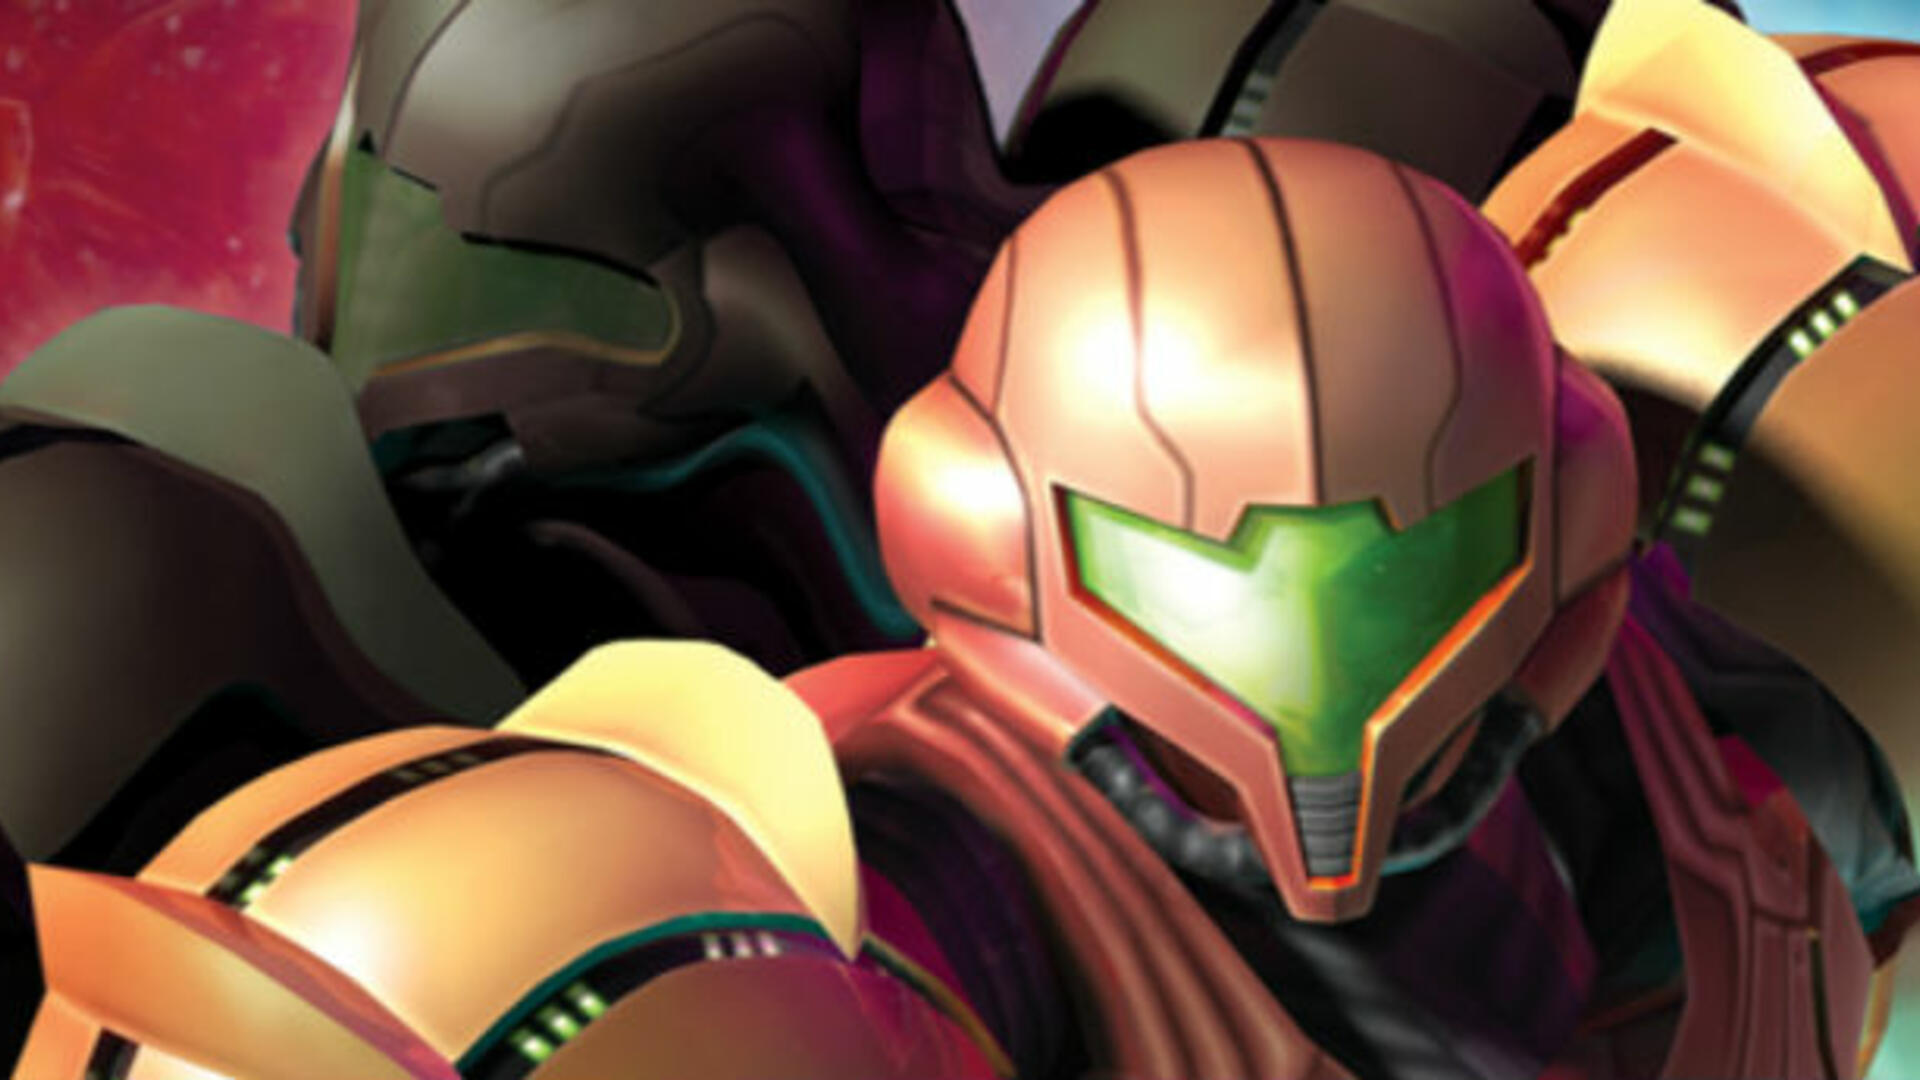 Metroid Prime 4 Being Handled By Bandai Namco Singapore [Report]